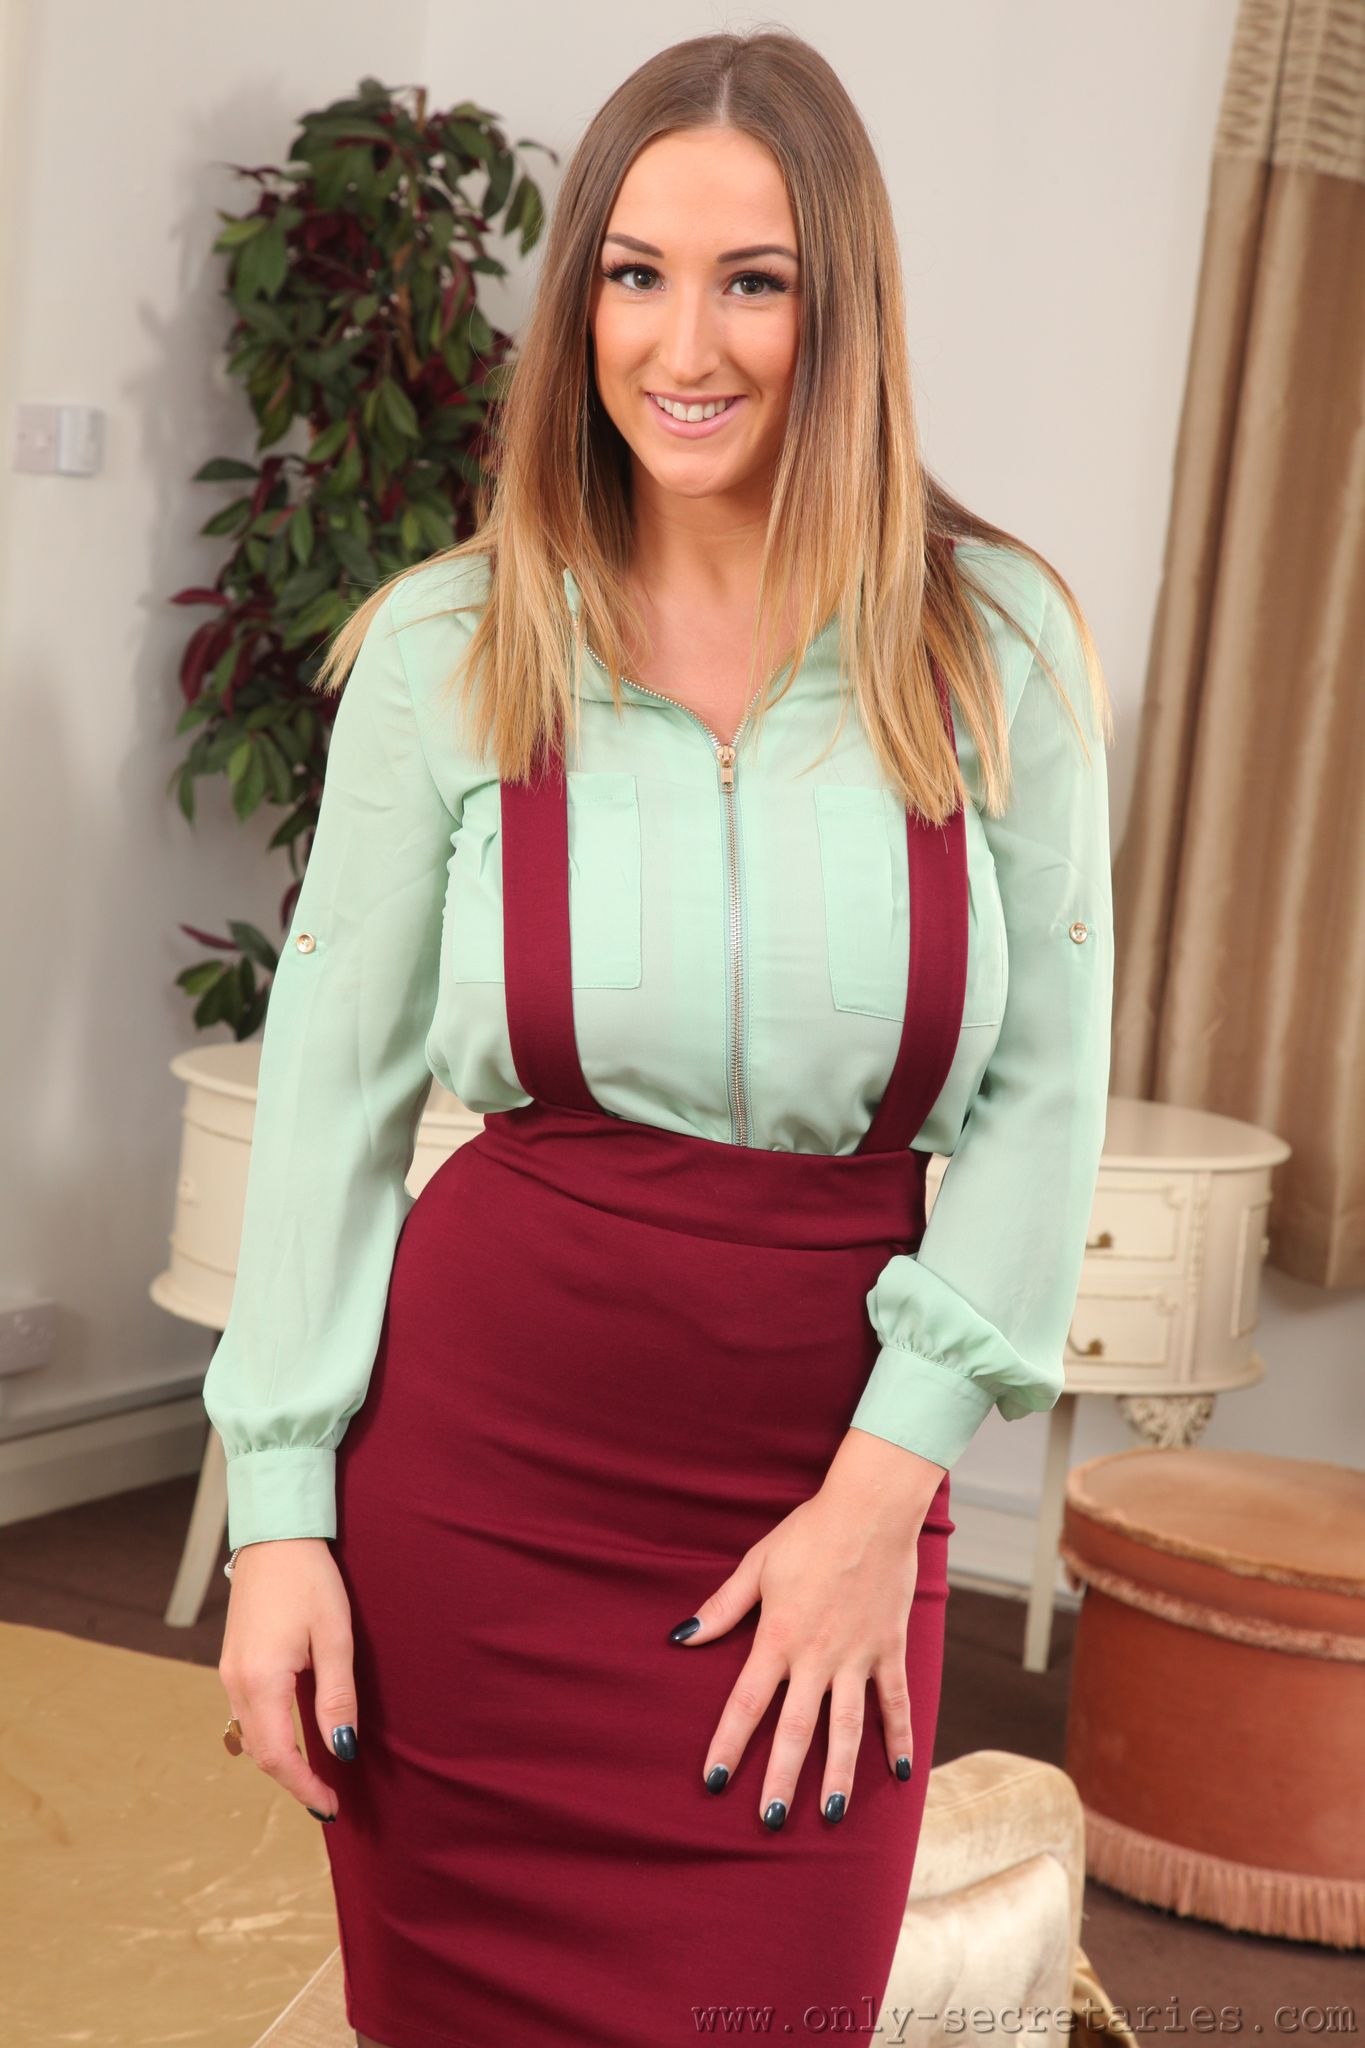 stacey p suspender boobs - prime curves